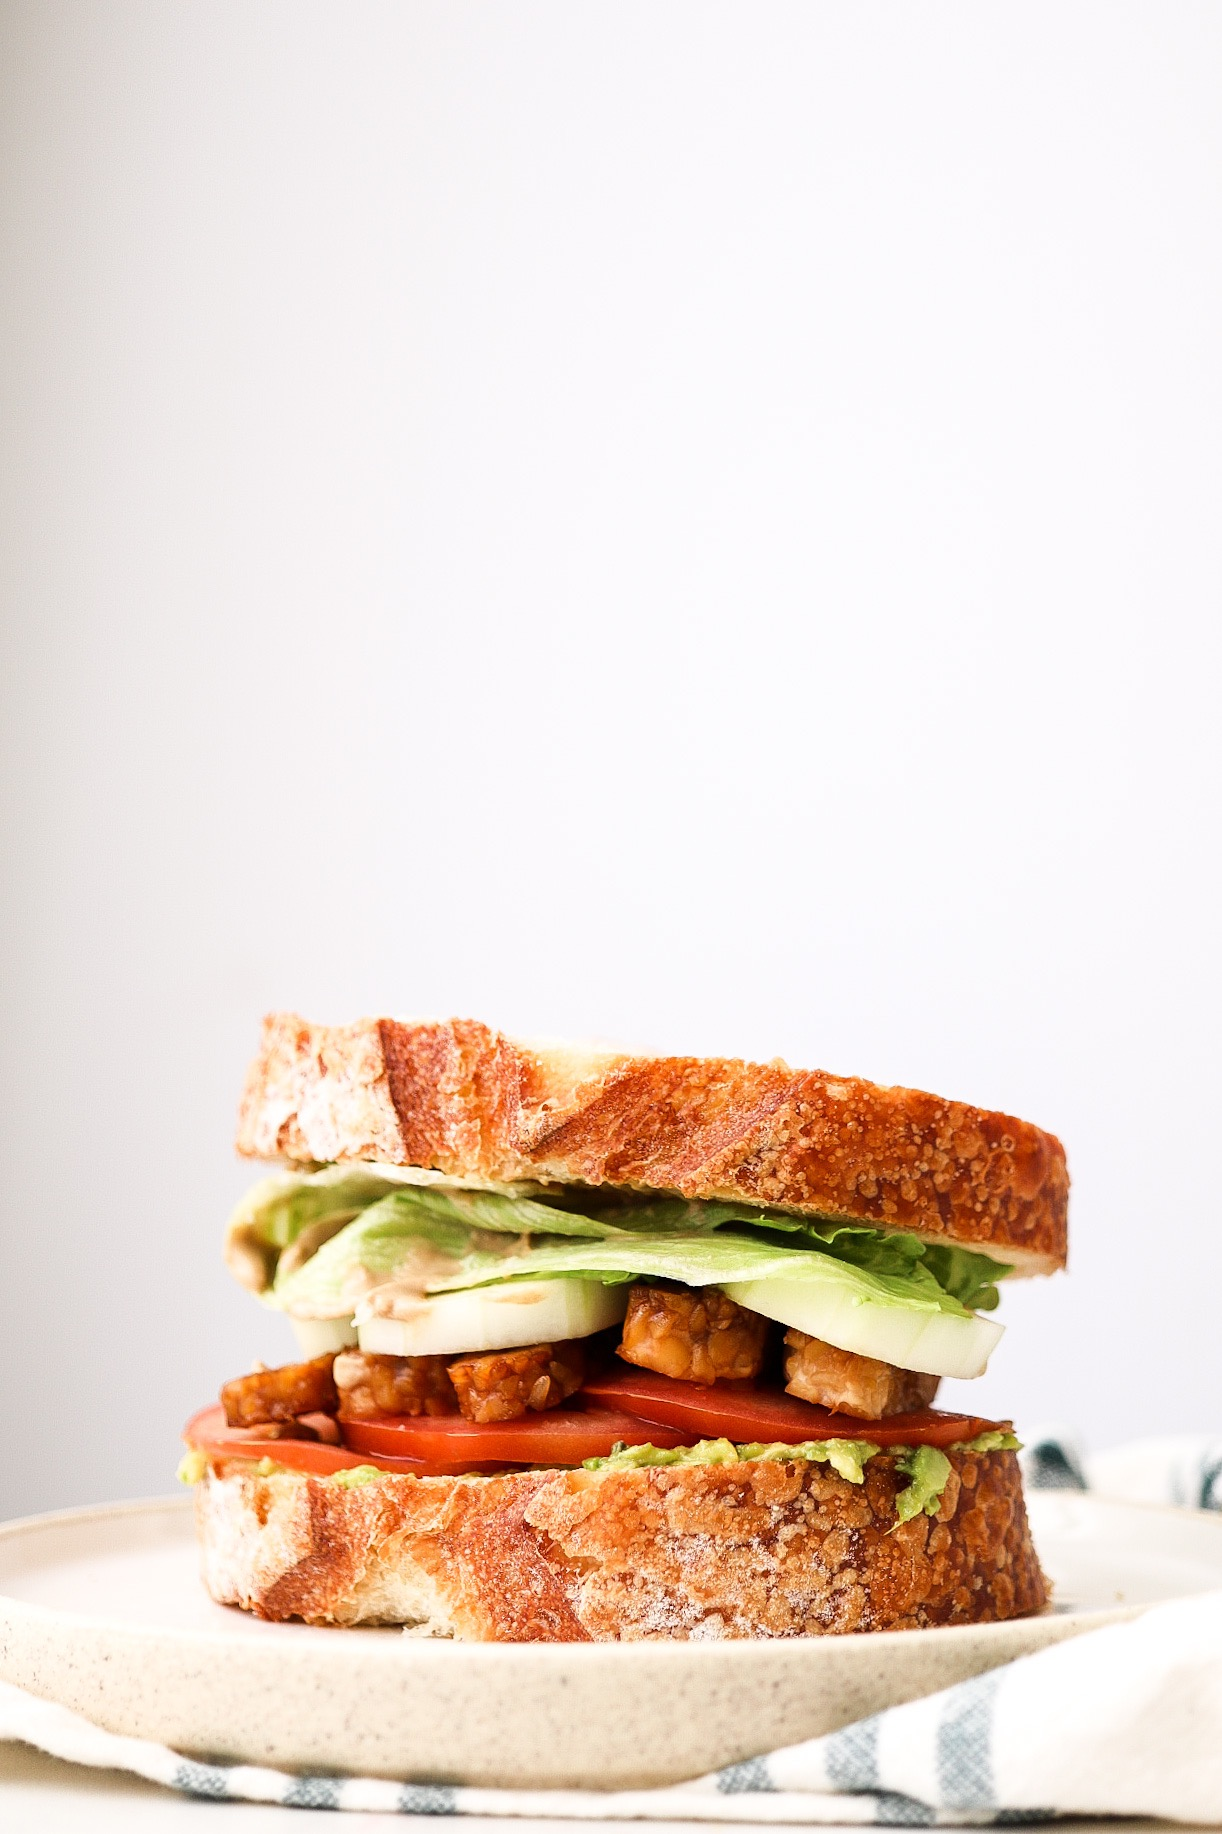 Avocado Tempeh BLT - INGREDIENTS:1 package tempeh1/4 cup water3 Tbsp coconut aminos1/4 tsp salt1 Tbsp maple syrup1/2 Tbsp apple cider vinegar1/2 tsp onion powder1/2 tsp garlic powderINSTRUCTIONS:Slice your tempeh into thin strips, and place into a saucepan with the remaining ingredients. Cook on medium-high heat, mixing the mixture around and getting the tempeh strips fully coated. Allow the mixture to simmer and cook for around 3-4 minutes, until no more liquid is present and your tempeh is beautifully golden and coated.